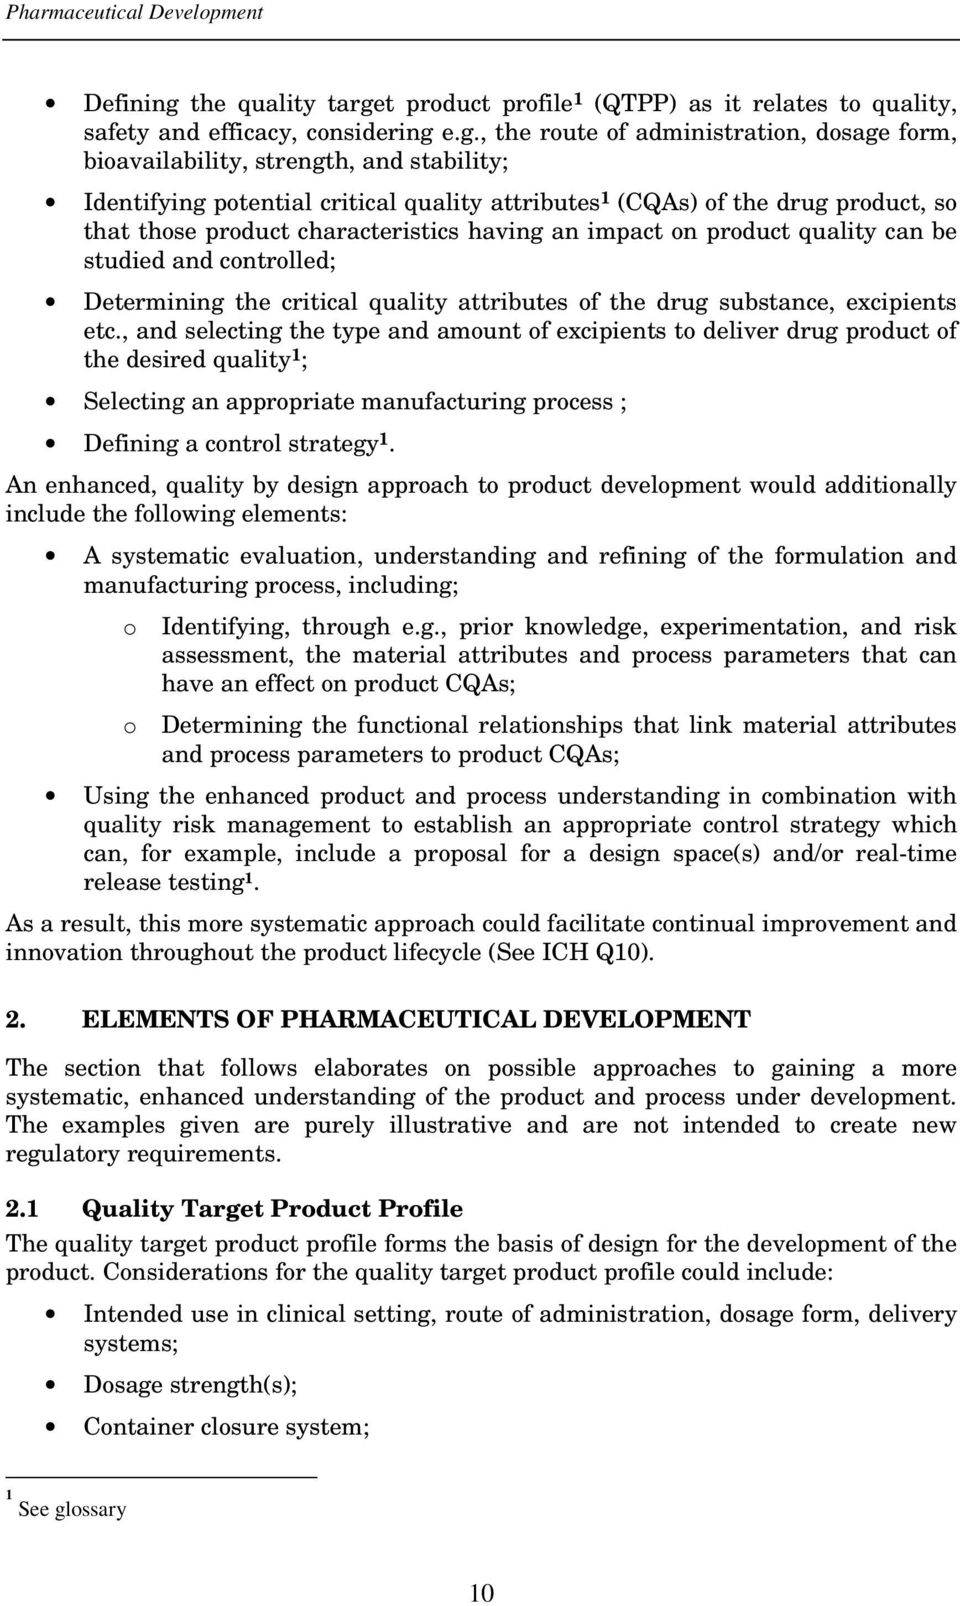 t product profile 1 (QTPP) as it relates to quality, safety and efficacy, considering